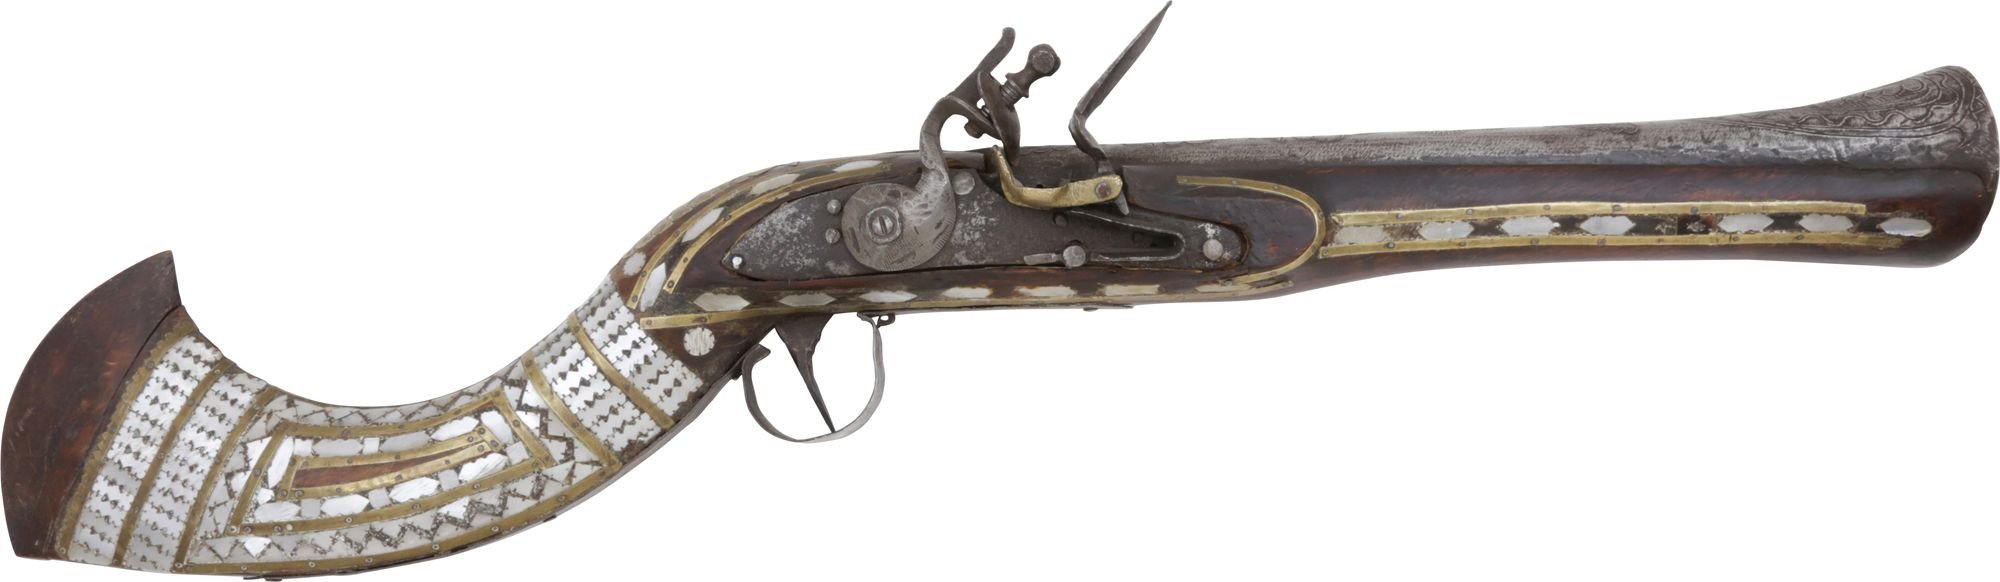 Afghan Flintlock Blunderbuss - Product